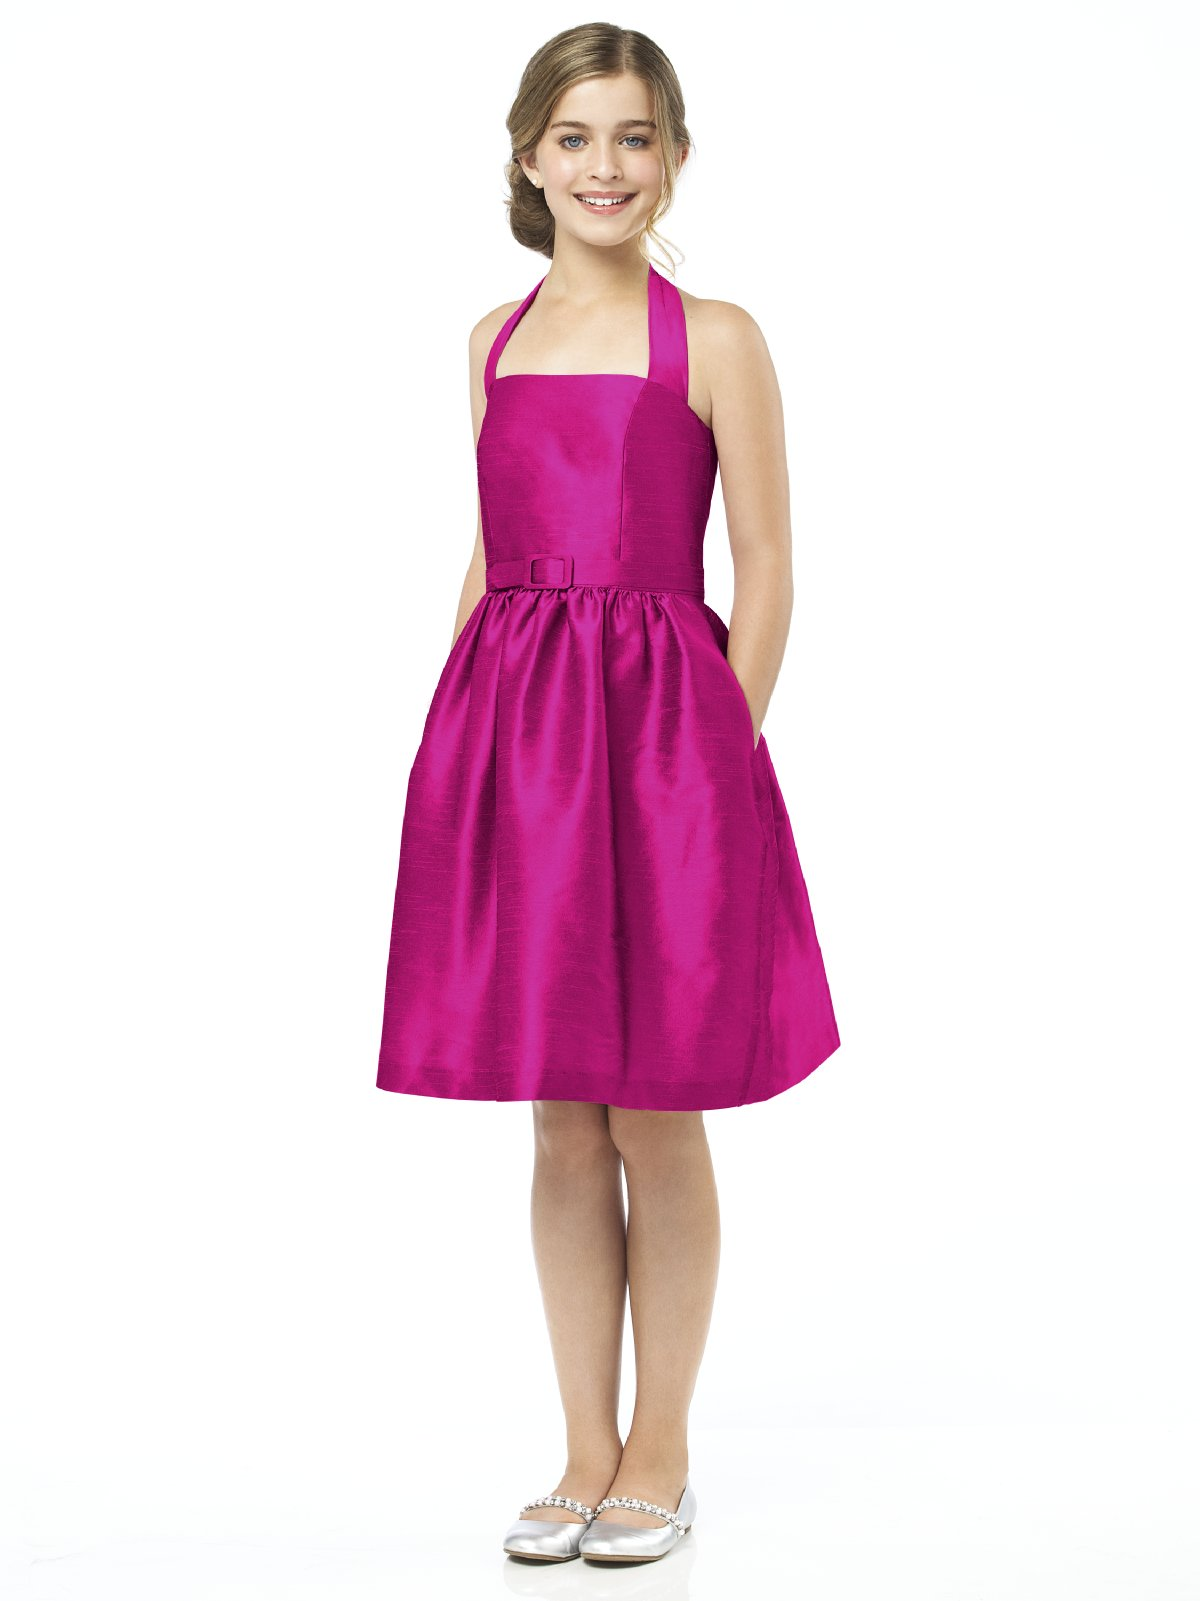 Fuchsia A Line Halter Zipper Knee Length Draped Prom Dresses With Belt And Pocket